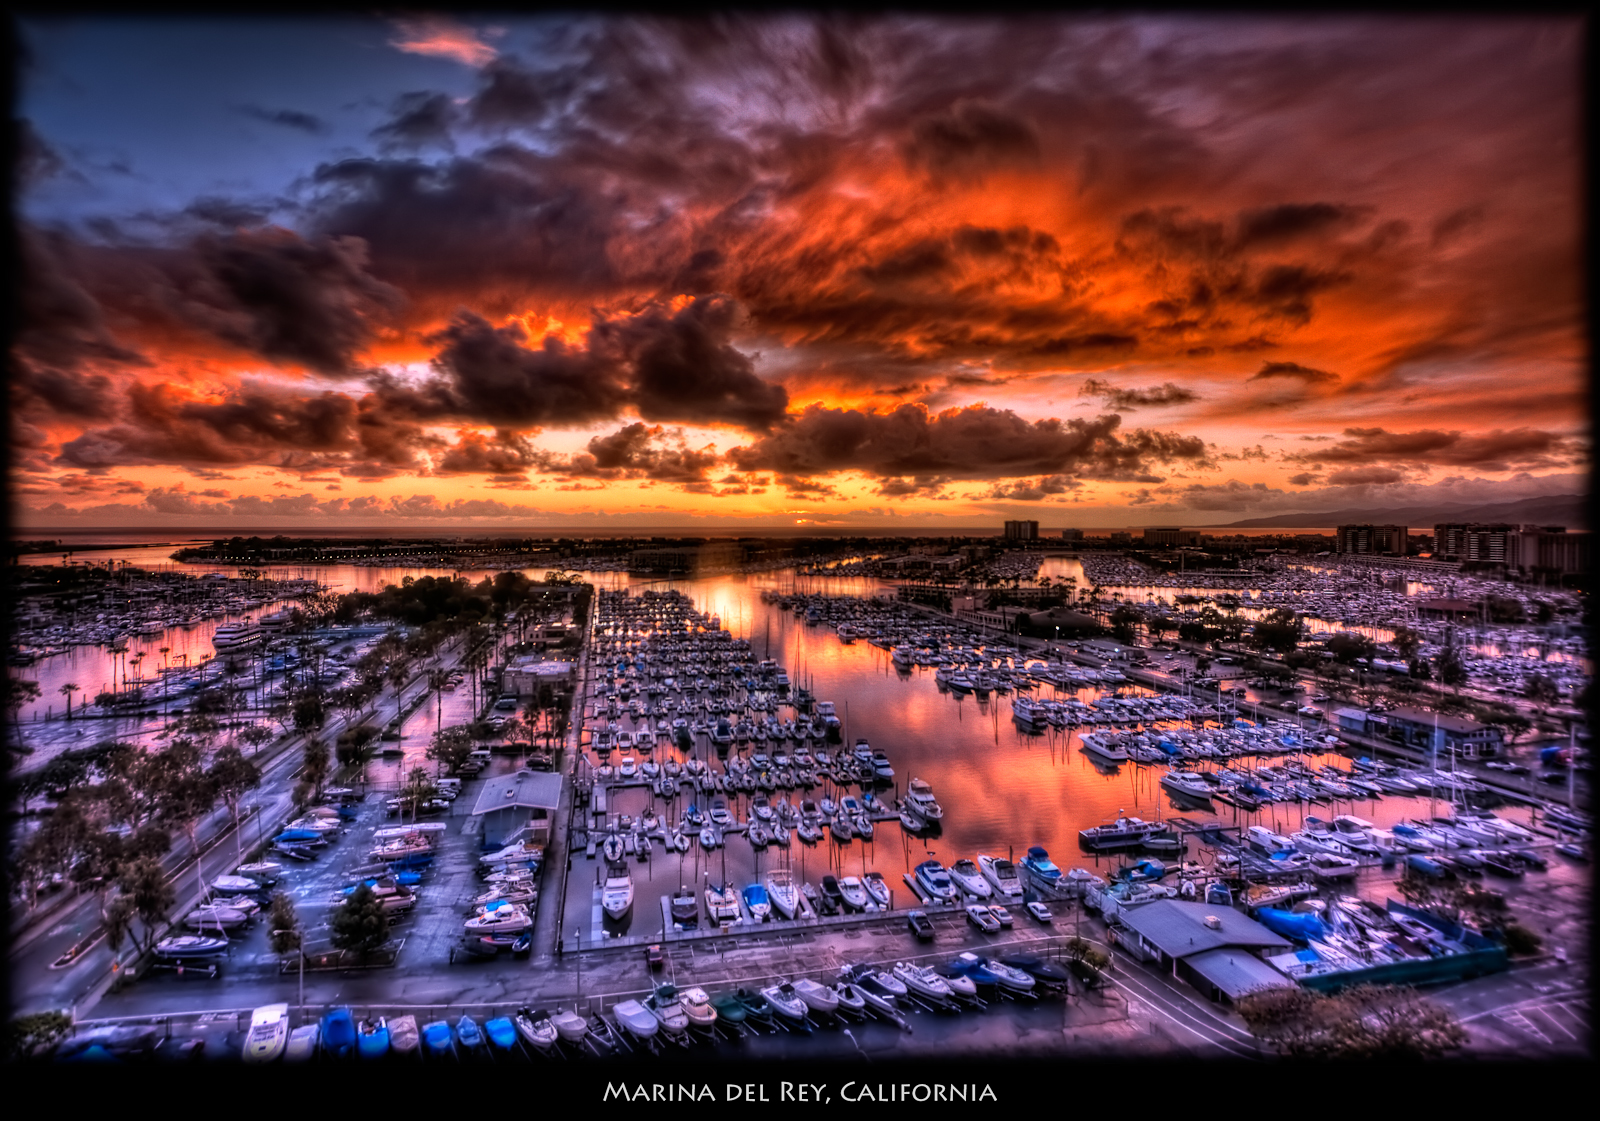 Sunset from Feb 9. It's been almost 2 months since I posted a photo. Hard to believe ... I've been very busy. This was the nicest sunset this winter when I was in my office. ISO 100, 12mm, f5. HDR of 9 exposures, 1/50 to 5 seconds. Processed inPhotomatix and Nik Color Efex: White Neutralizer and Pro Contrast to neutralize the blue/purple cast from the window tint. Slight Tonal Contrast and Graduated Filter. Imagenomic noise reduction.